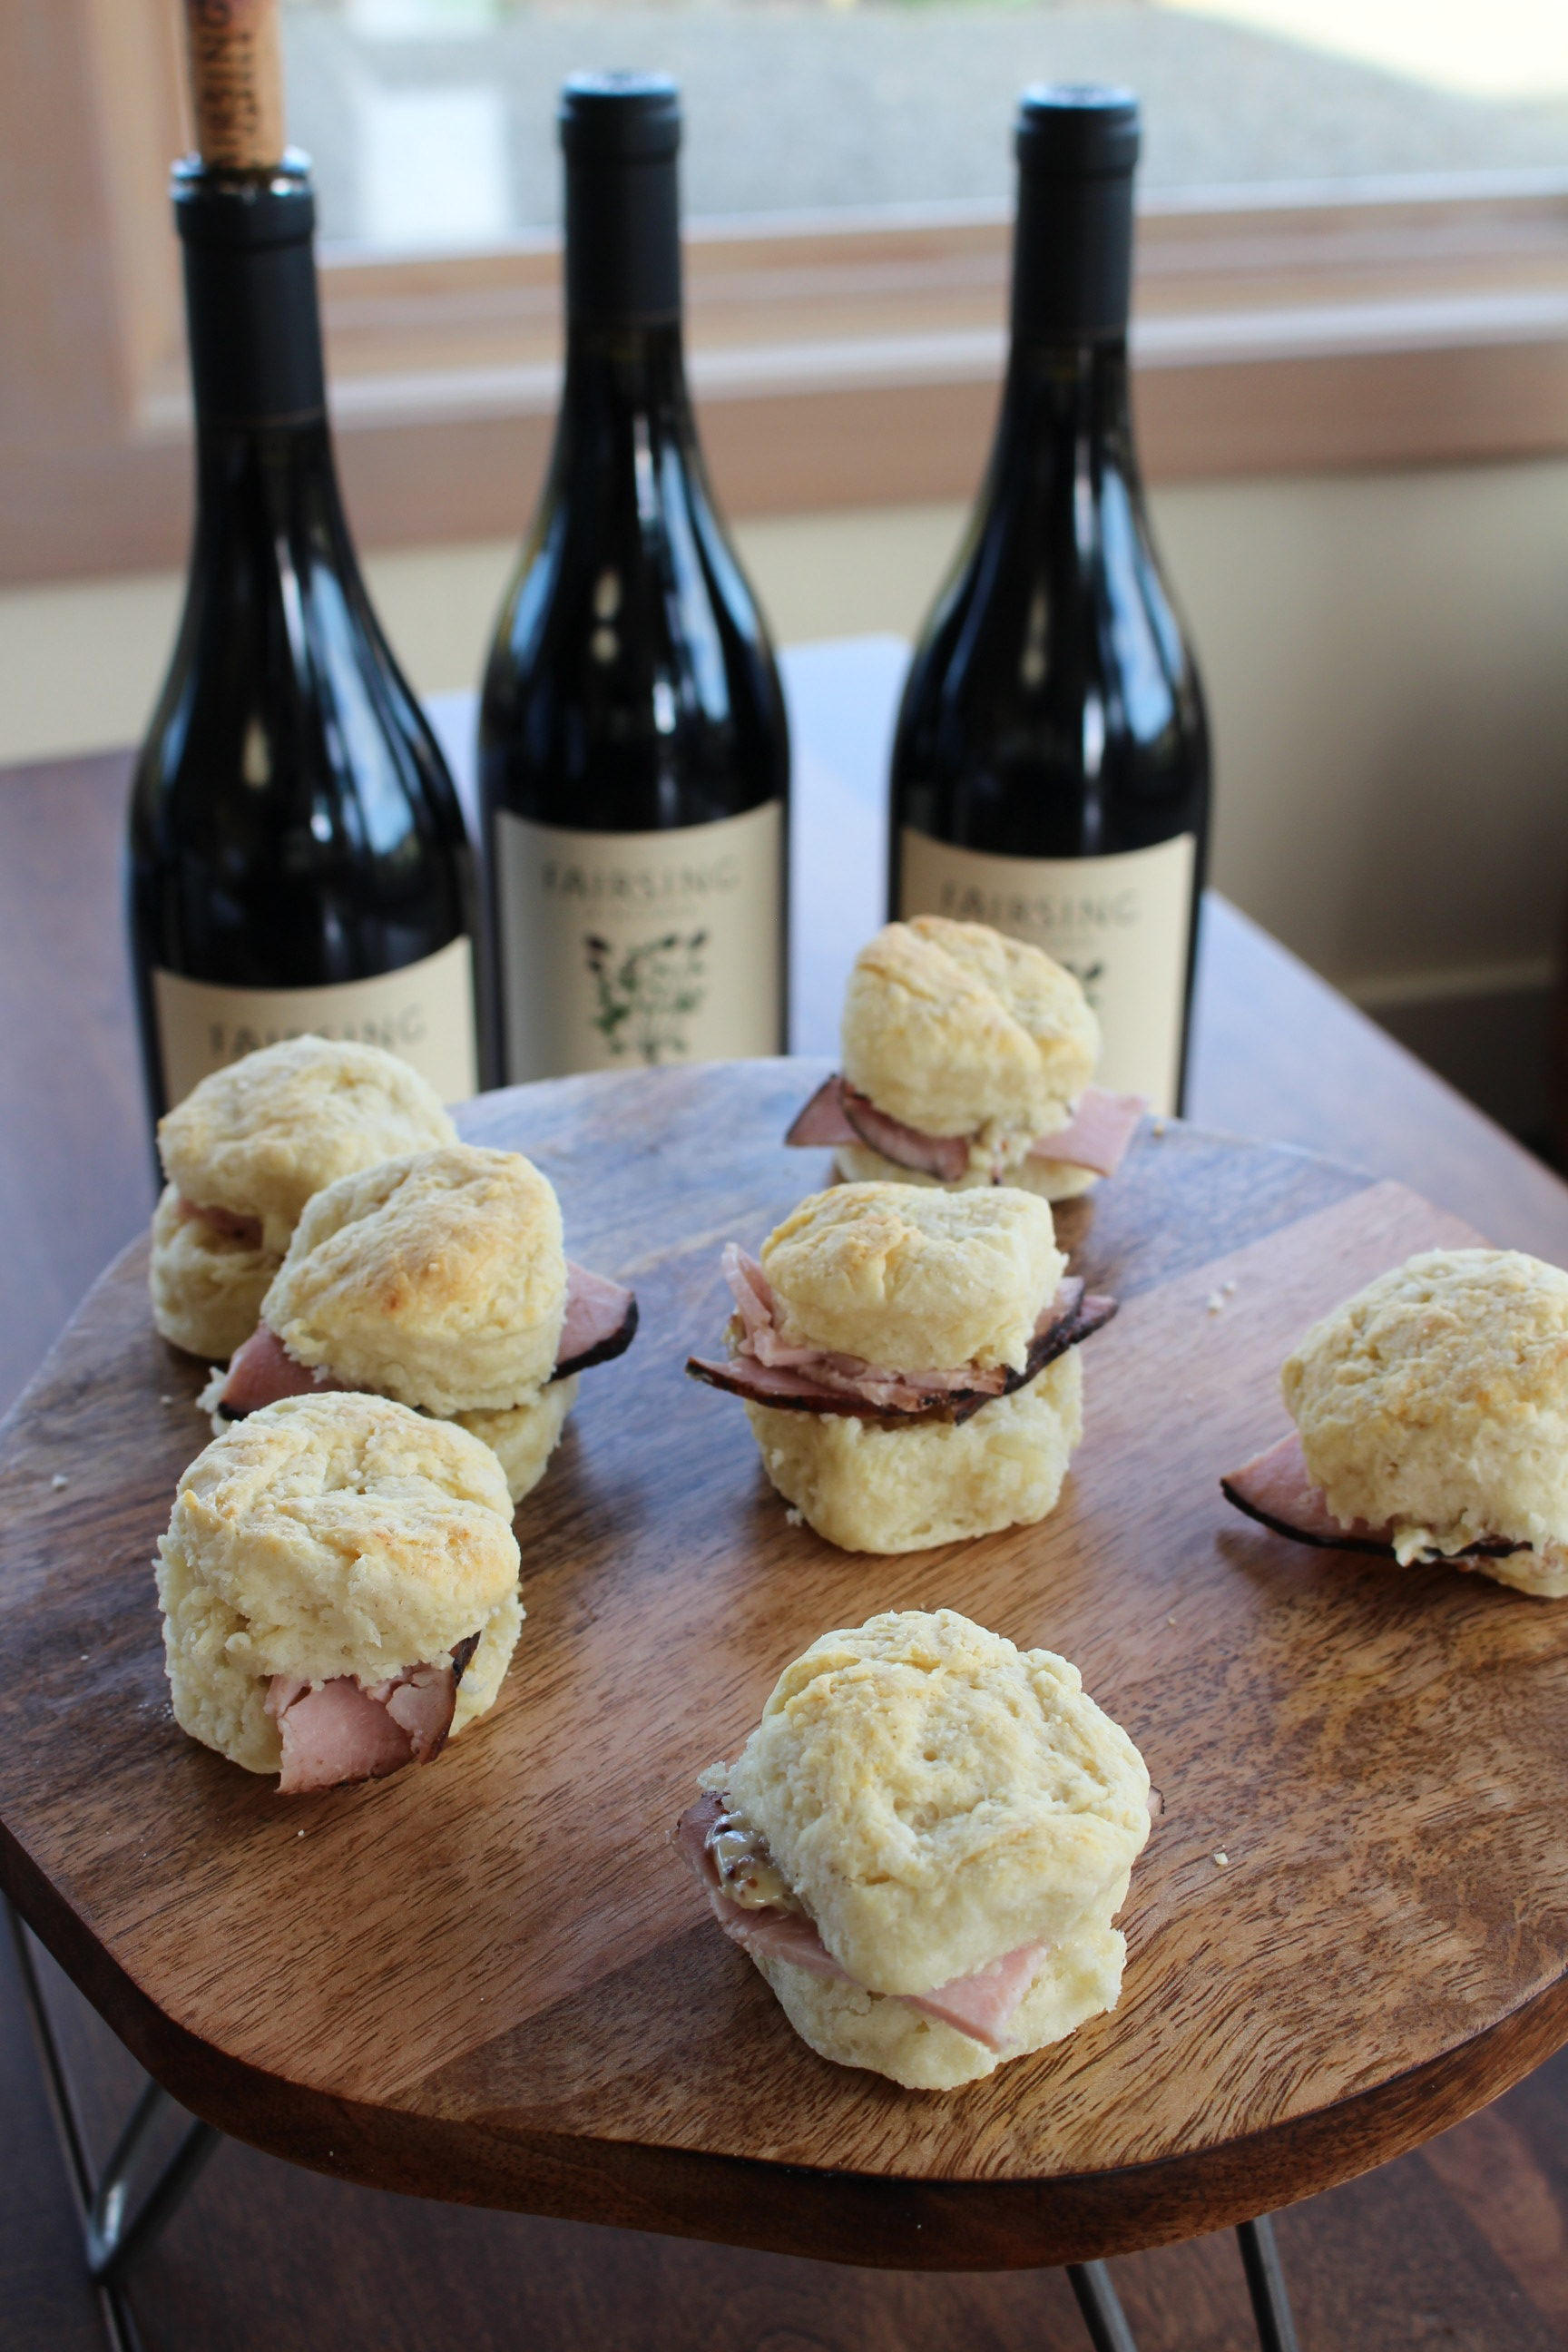 Homemade biscuits with honey mustard butter and black forest ham for Wine Club members at Fairsing Vineyard's fall open house